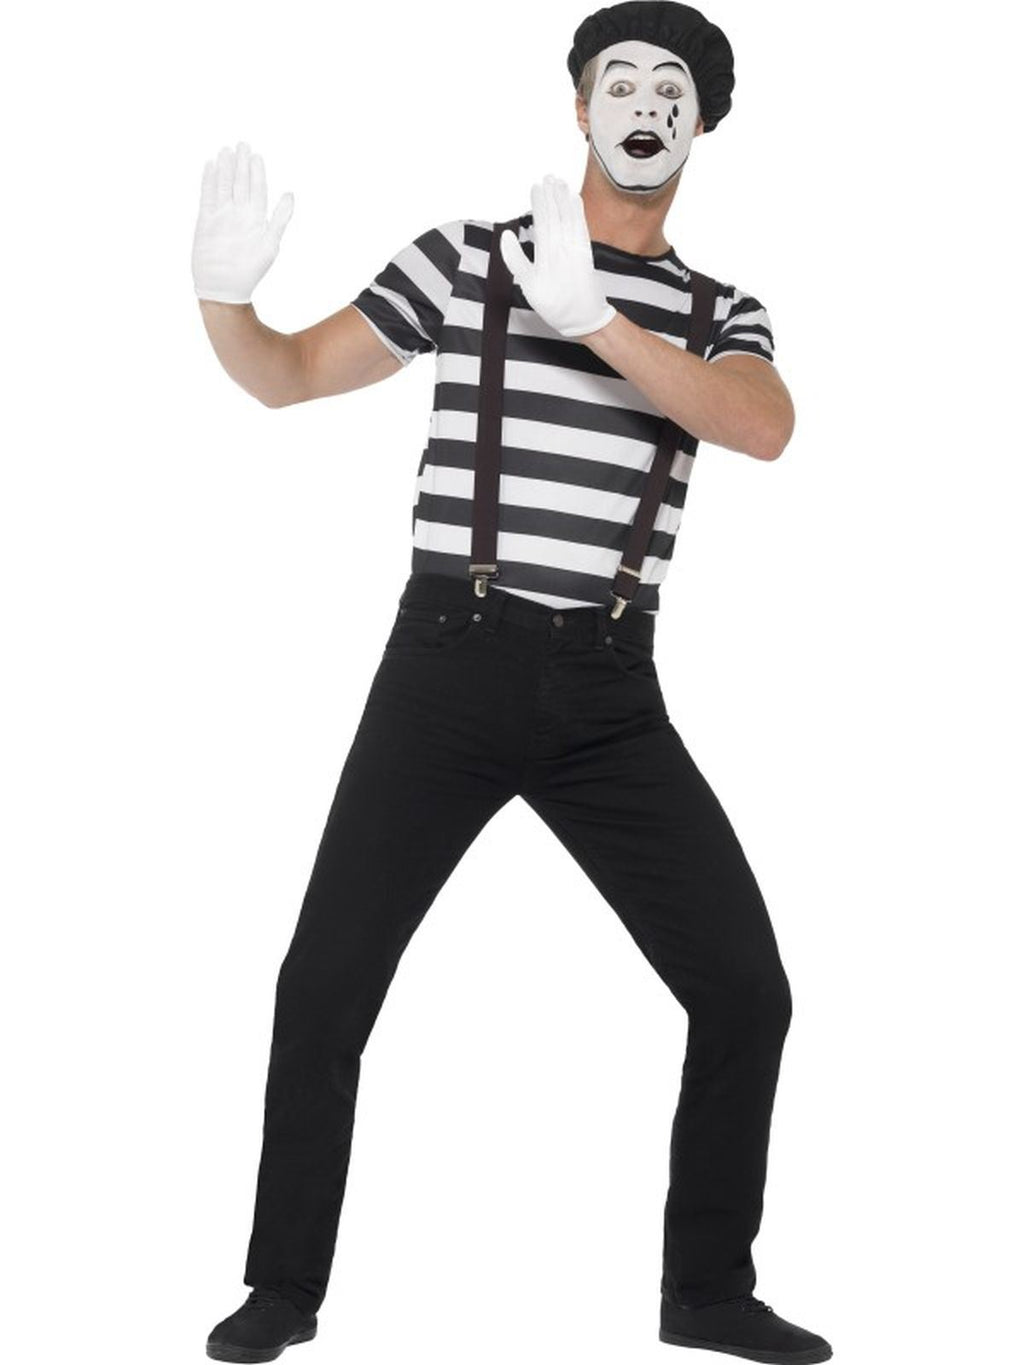 Gentleman Mime Artist Fancy Dress Costume